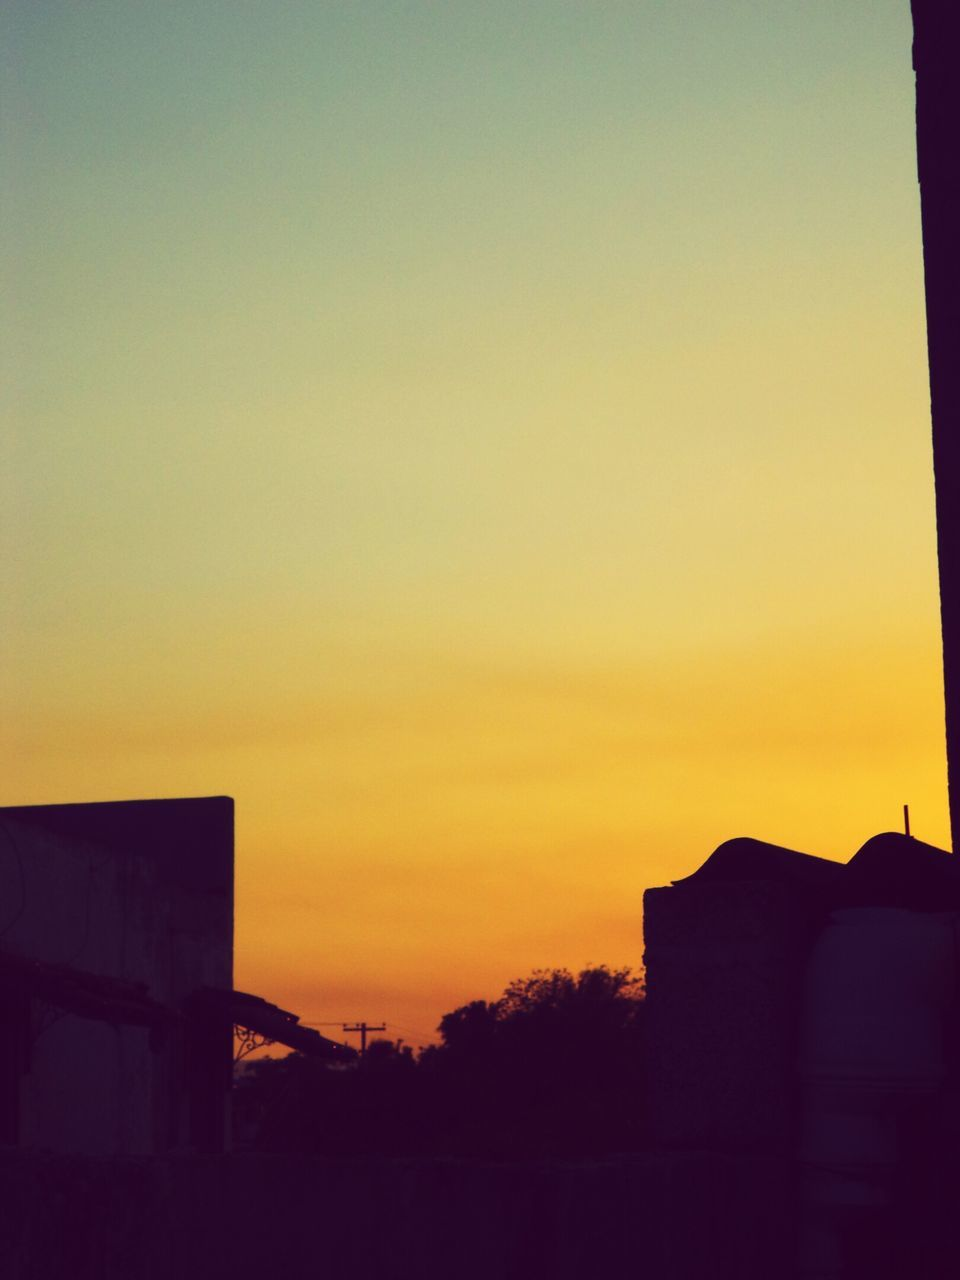 sunset, building exterior, silhouette, built structure, architecture, no people, sky, copy space, clear sky, outdoors, travel destinations, nature, city, beauty in nature, day